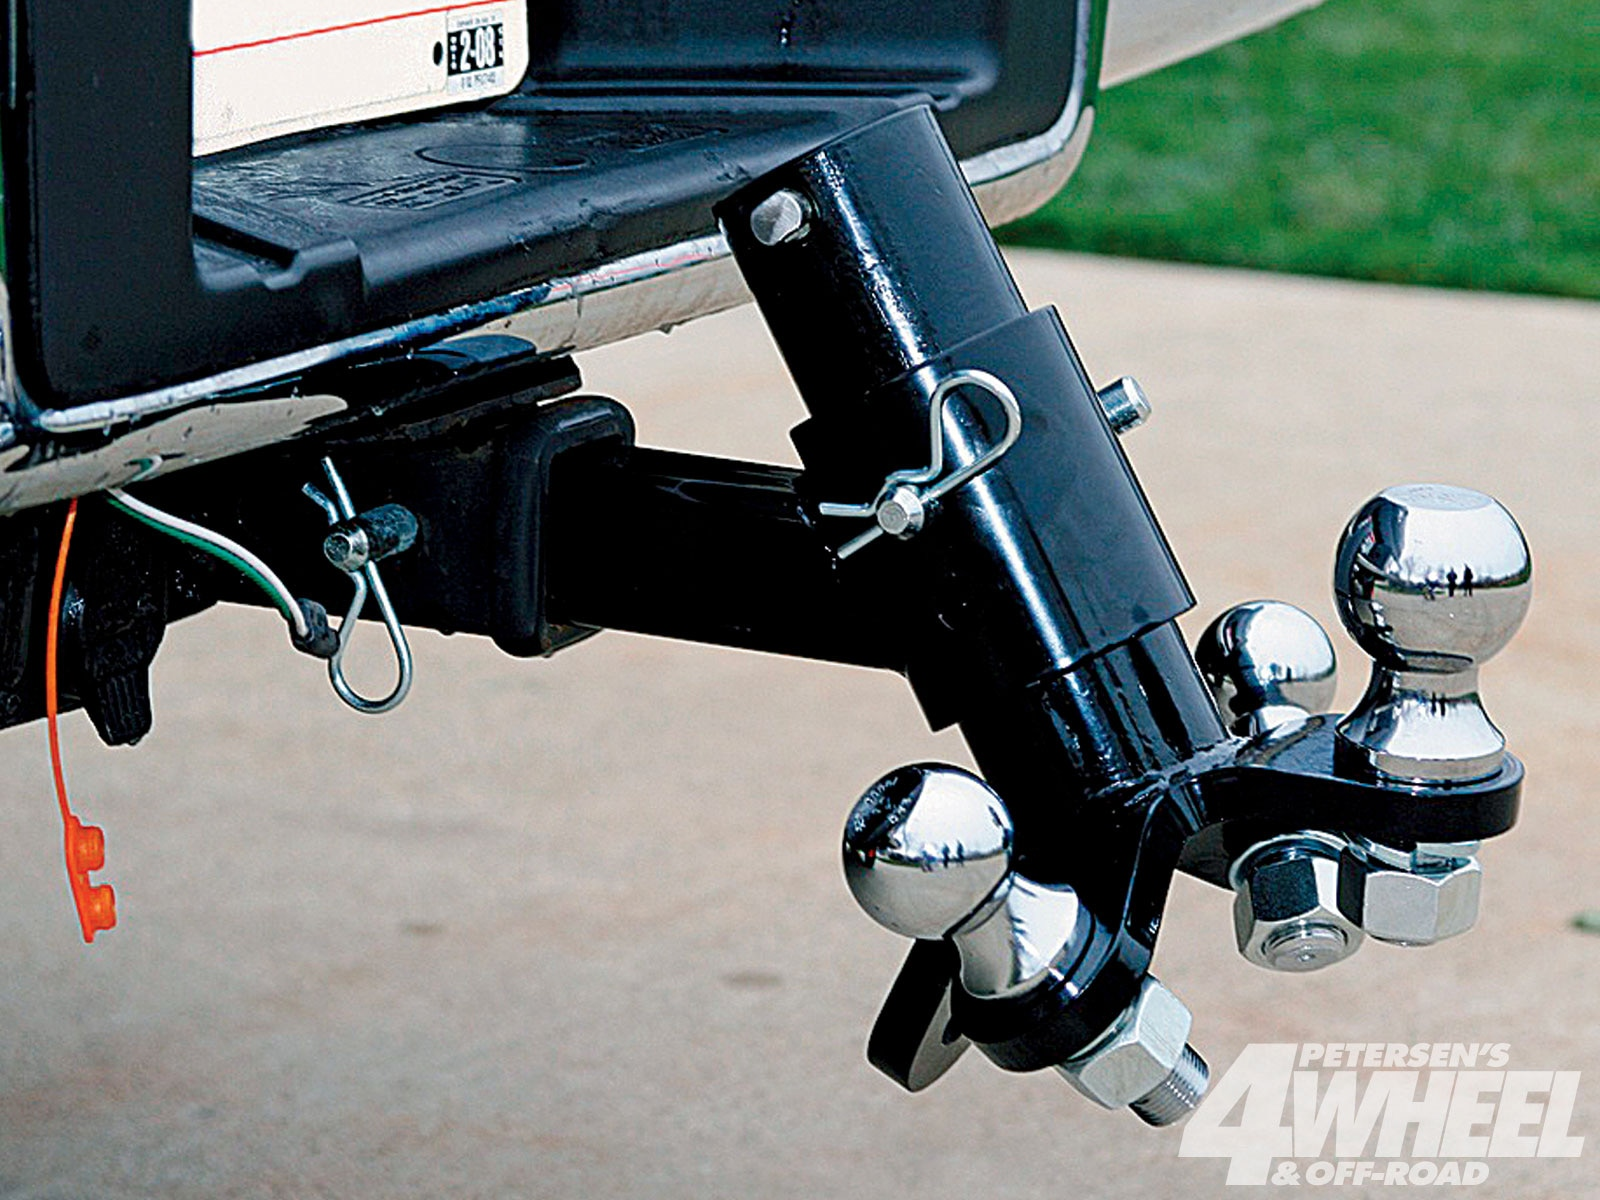 131 1003 04+2010 towing guide+boxer hitch mounts three different ball sizes